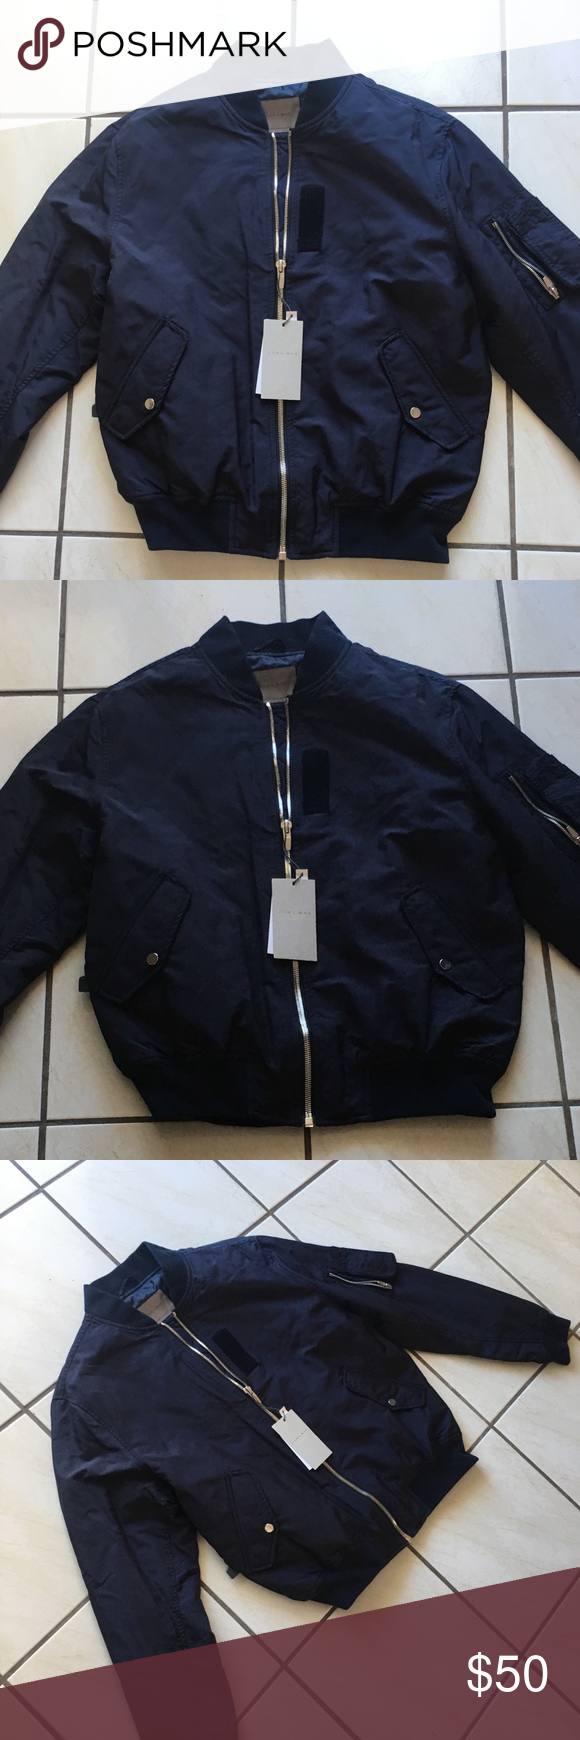 Zara Men's blue Bomber Jacket Brand New with tags mens